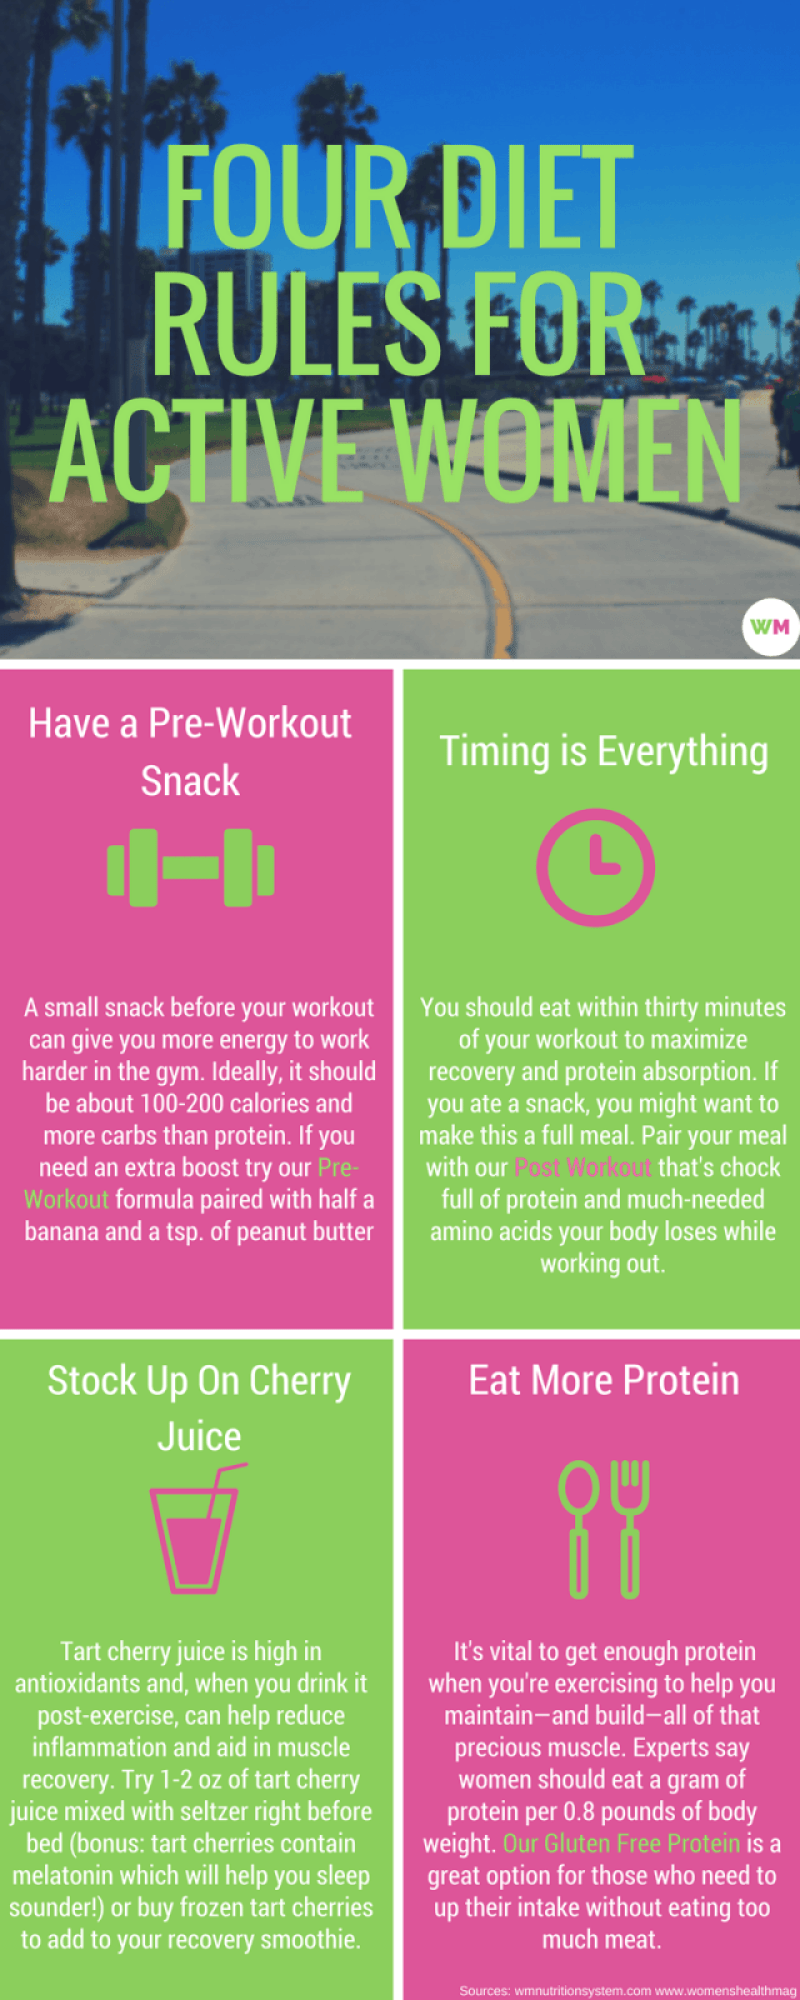 four diet rules for active women